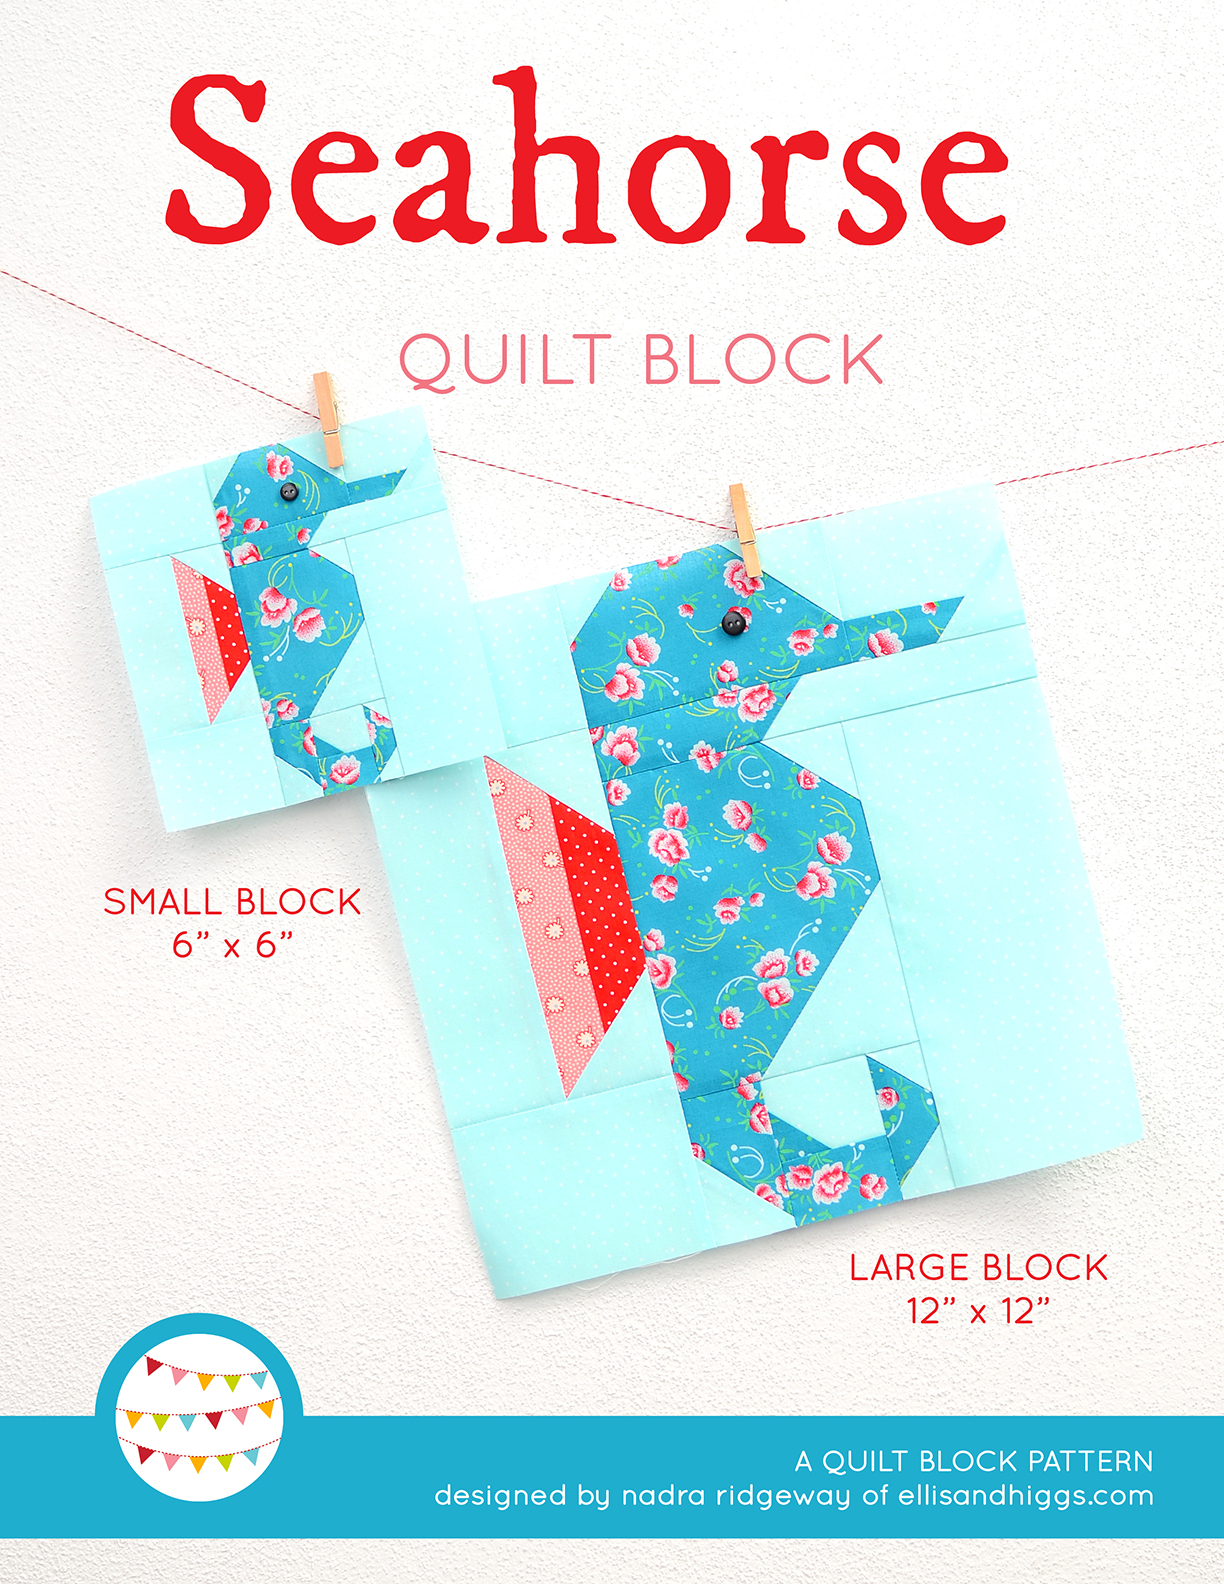 Seahorse quilt pattern